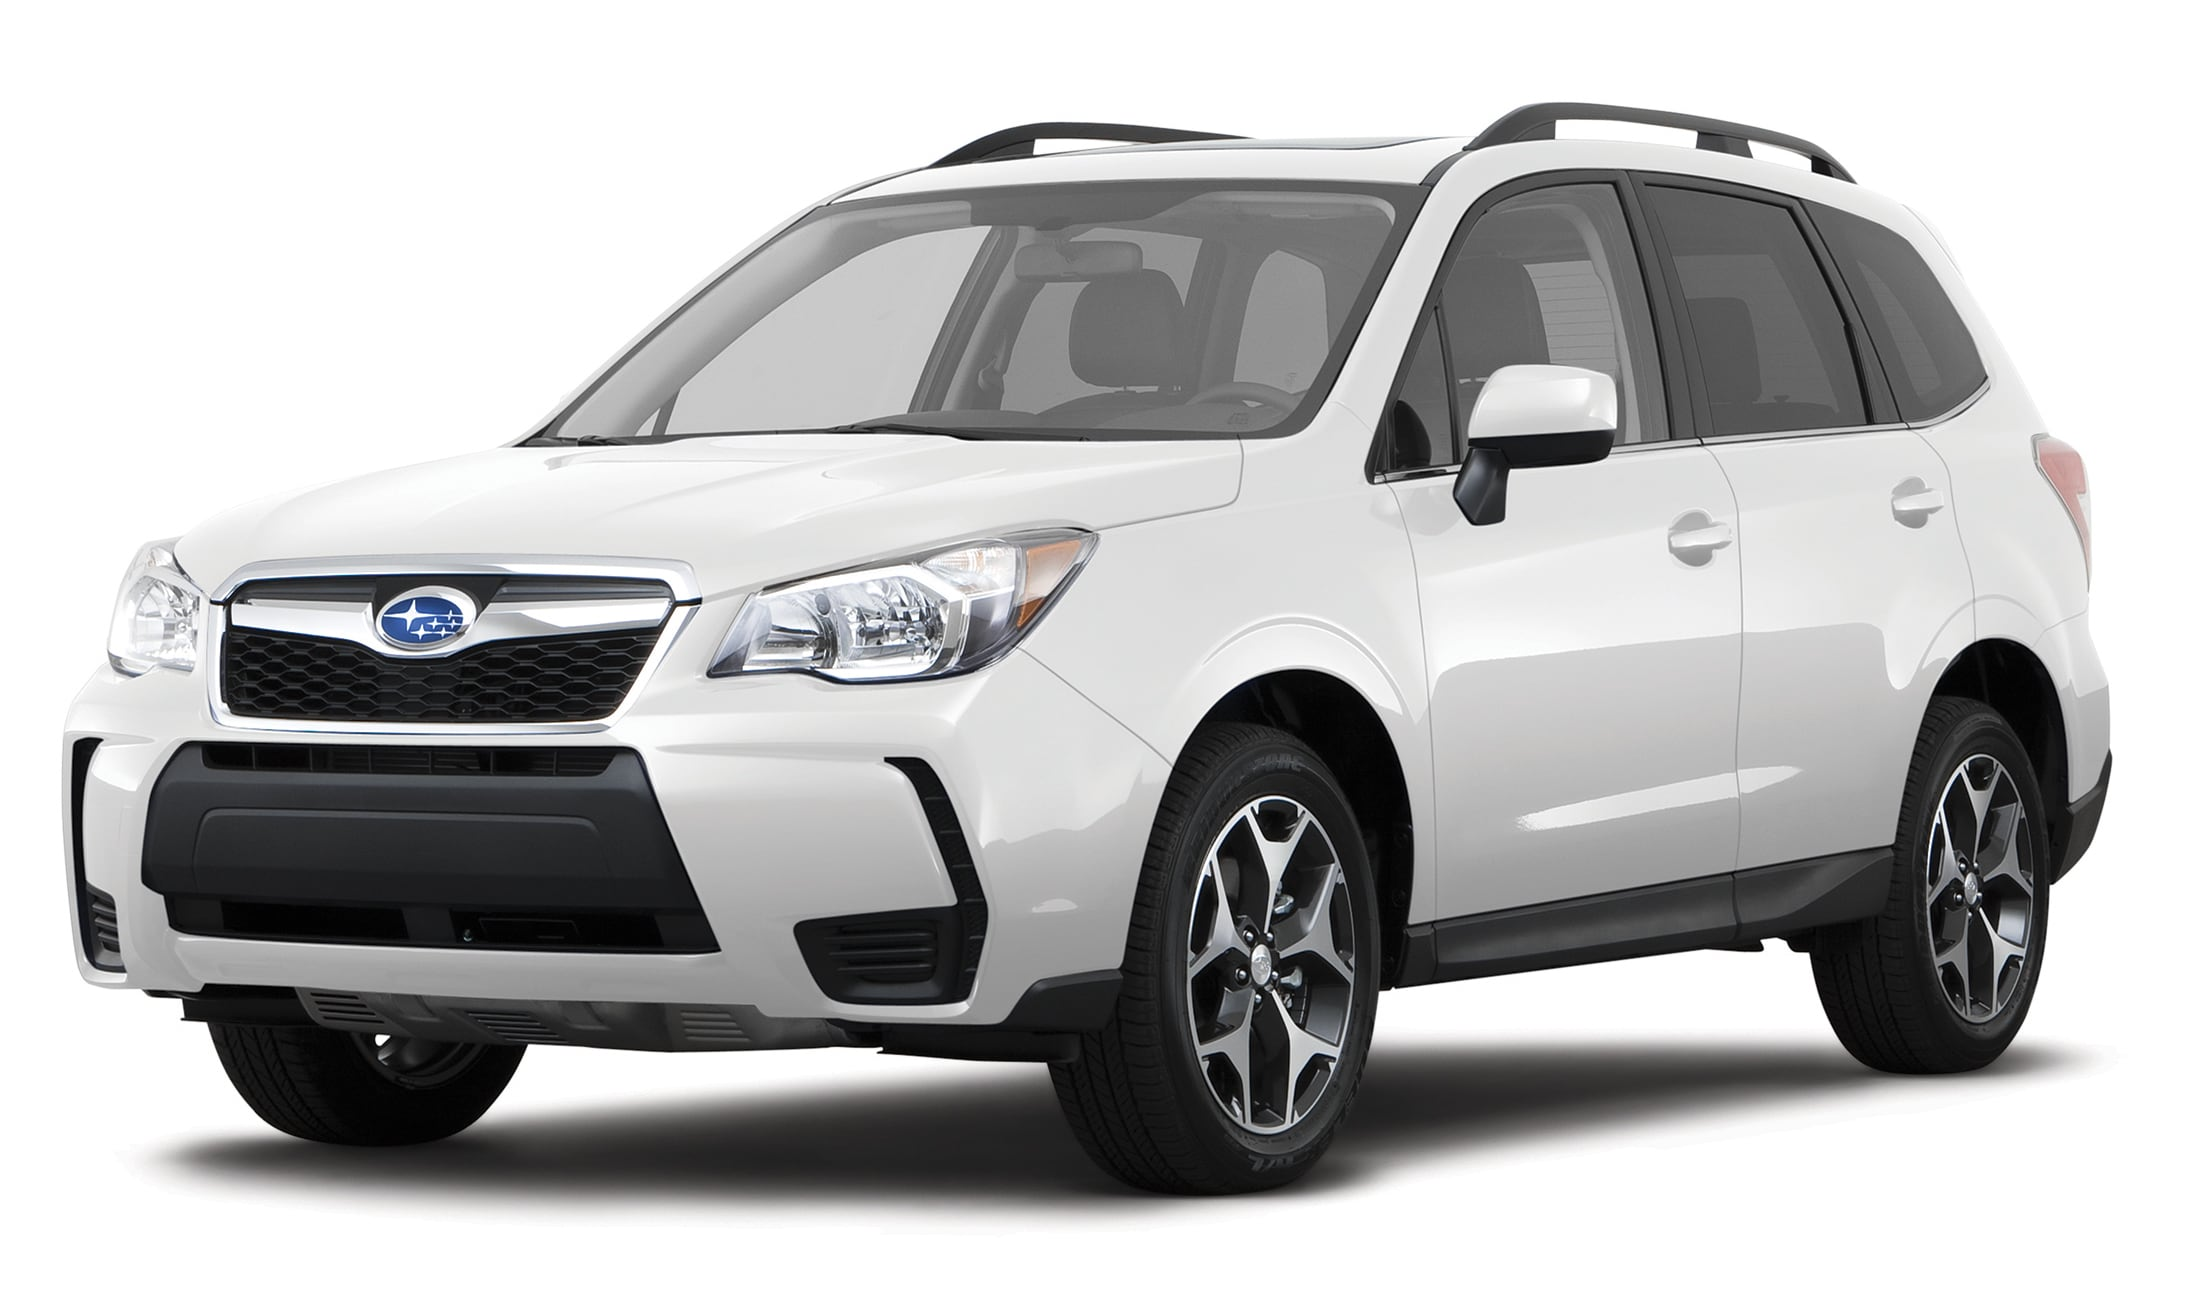 2014 subaru forester trim levels and options twin city. Black Bedroom Furniture Sets. Home Design Ideas